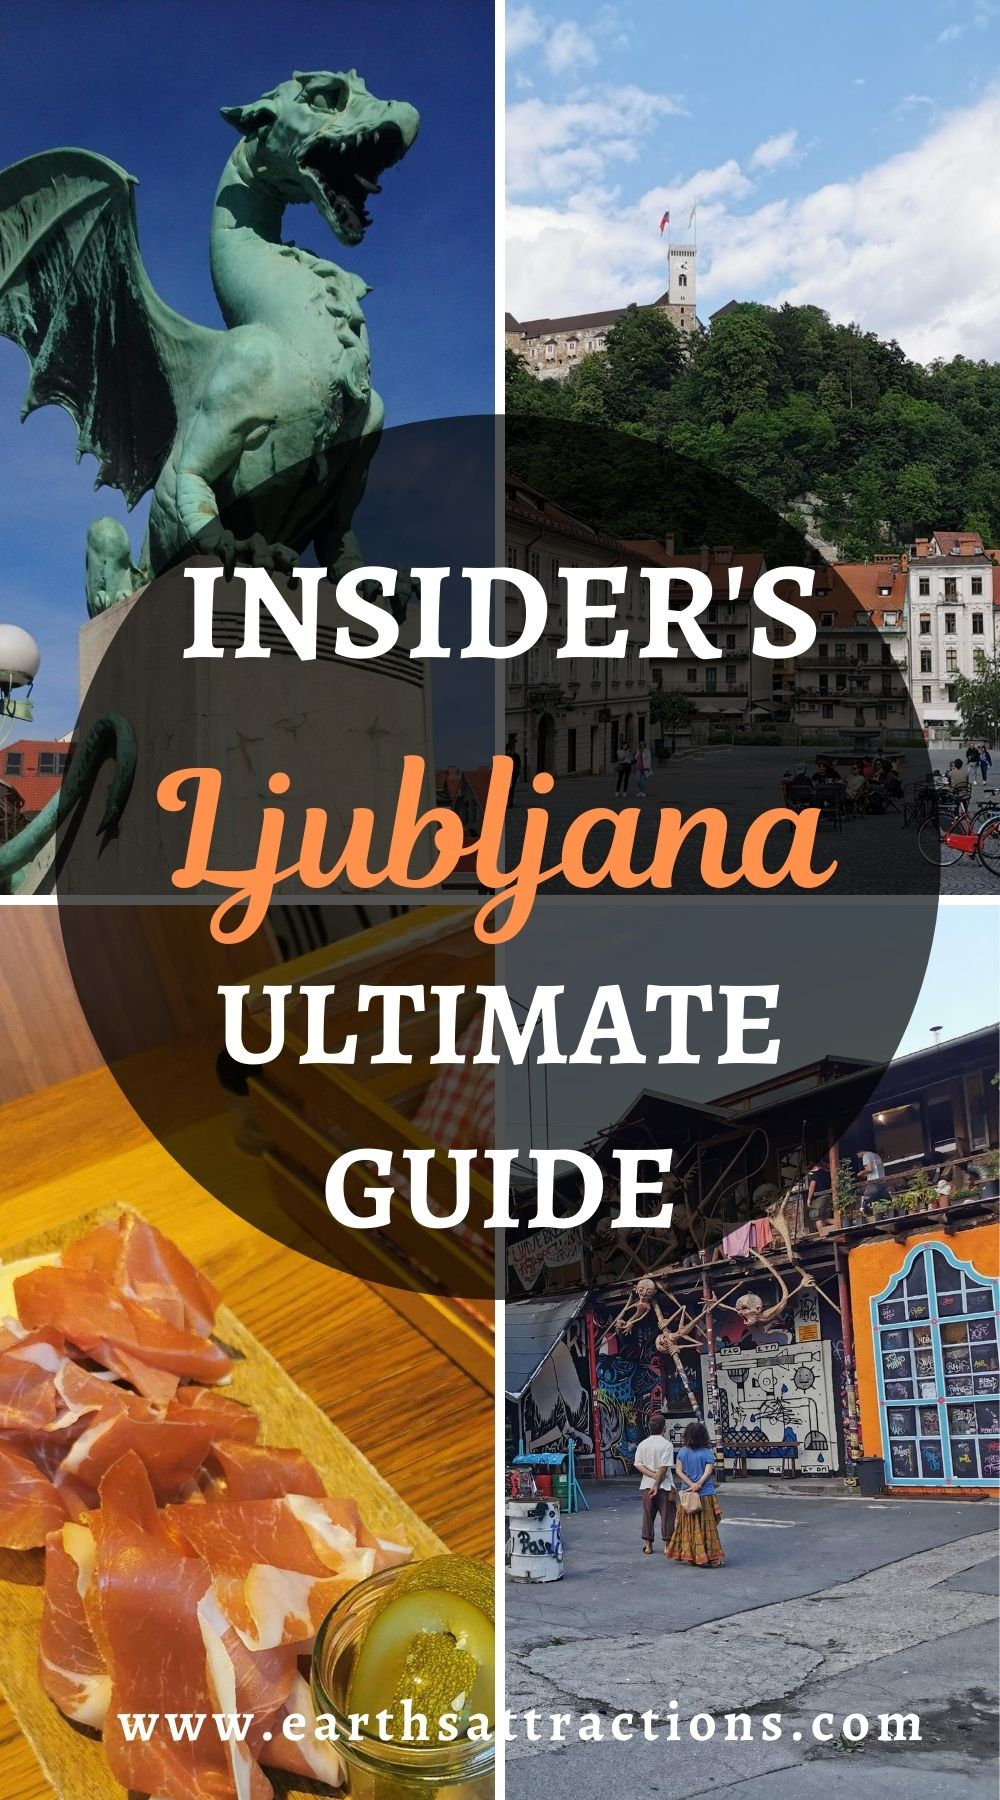 Insider's guide to Ljubljana Slovenia. Discover the best things to do in Ljubljana, including off the beaten path things to do from this Ljubljana guide. Everything you neek to know about Ljubljana is included. #ljubljana #ljubljanatravelguide #ljubljanaguide #slovenia #europetravel #earthsattractions #traveldestinations #trending #traveltips #travel